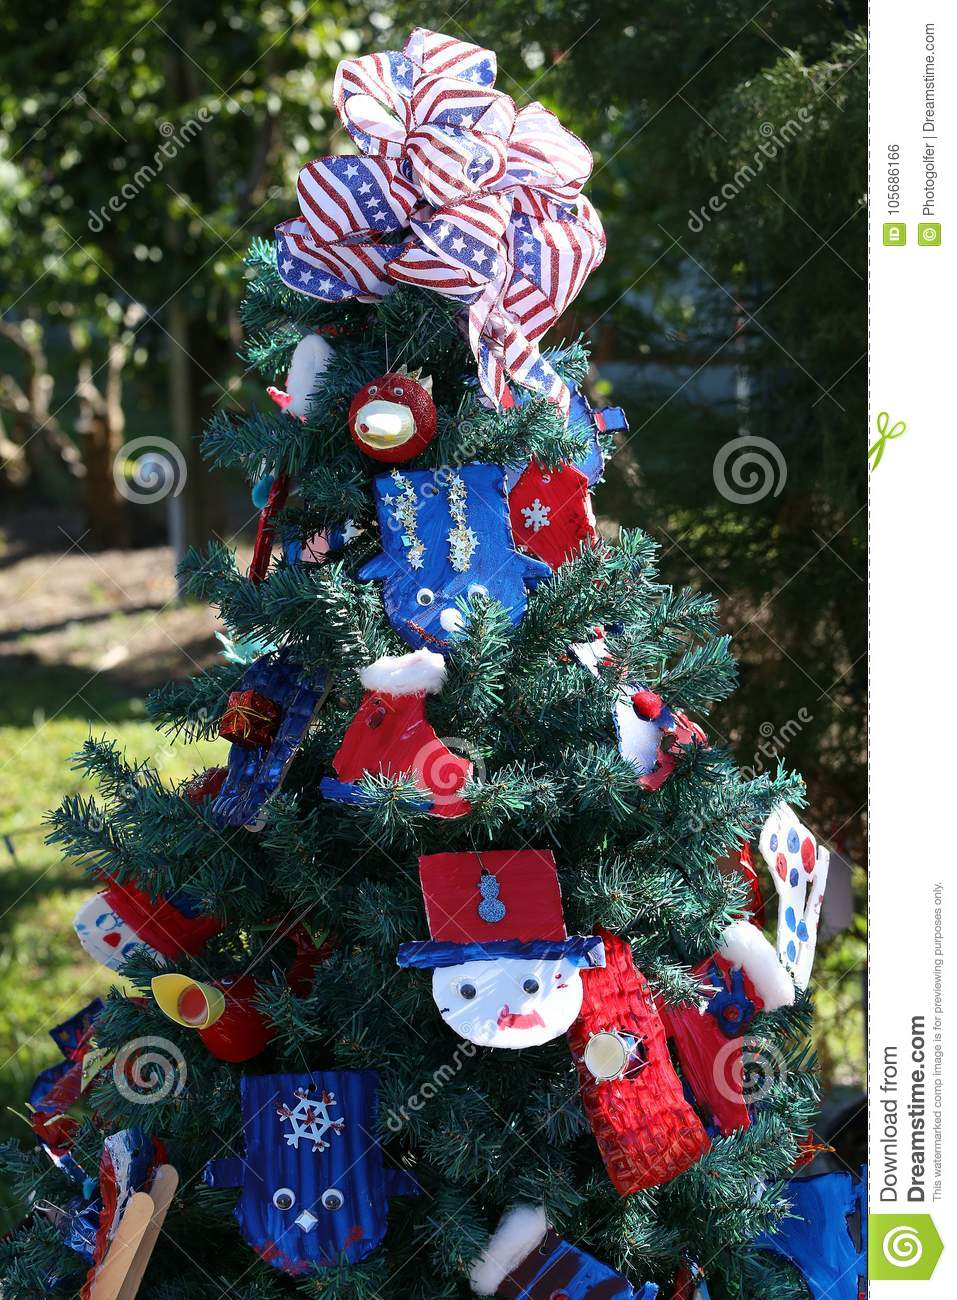 Patriotic Christmas Tree.Patriotic Christmas Tree In Fort Myers Florida Usa